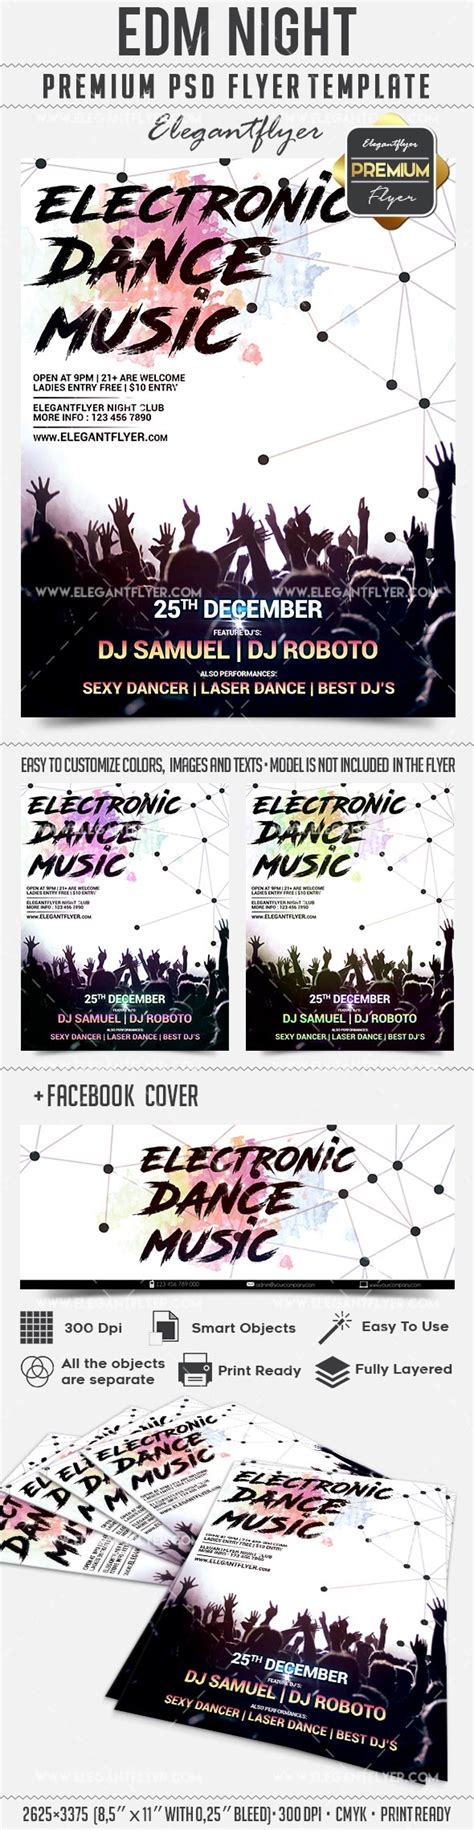 free edm party facebook cover template psd flyer